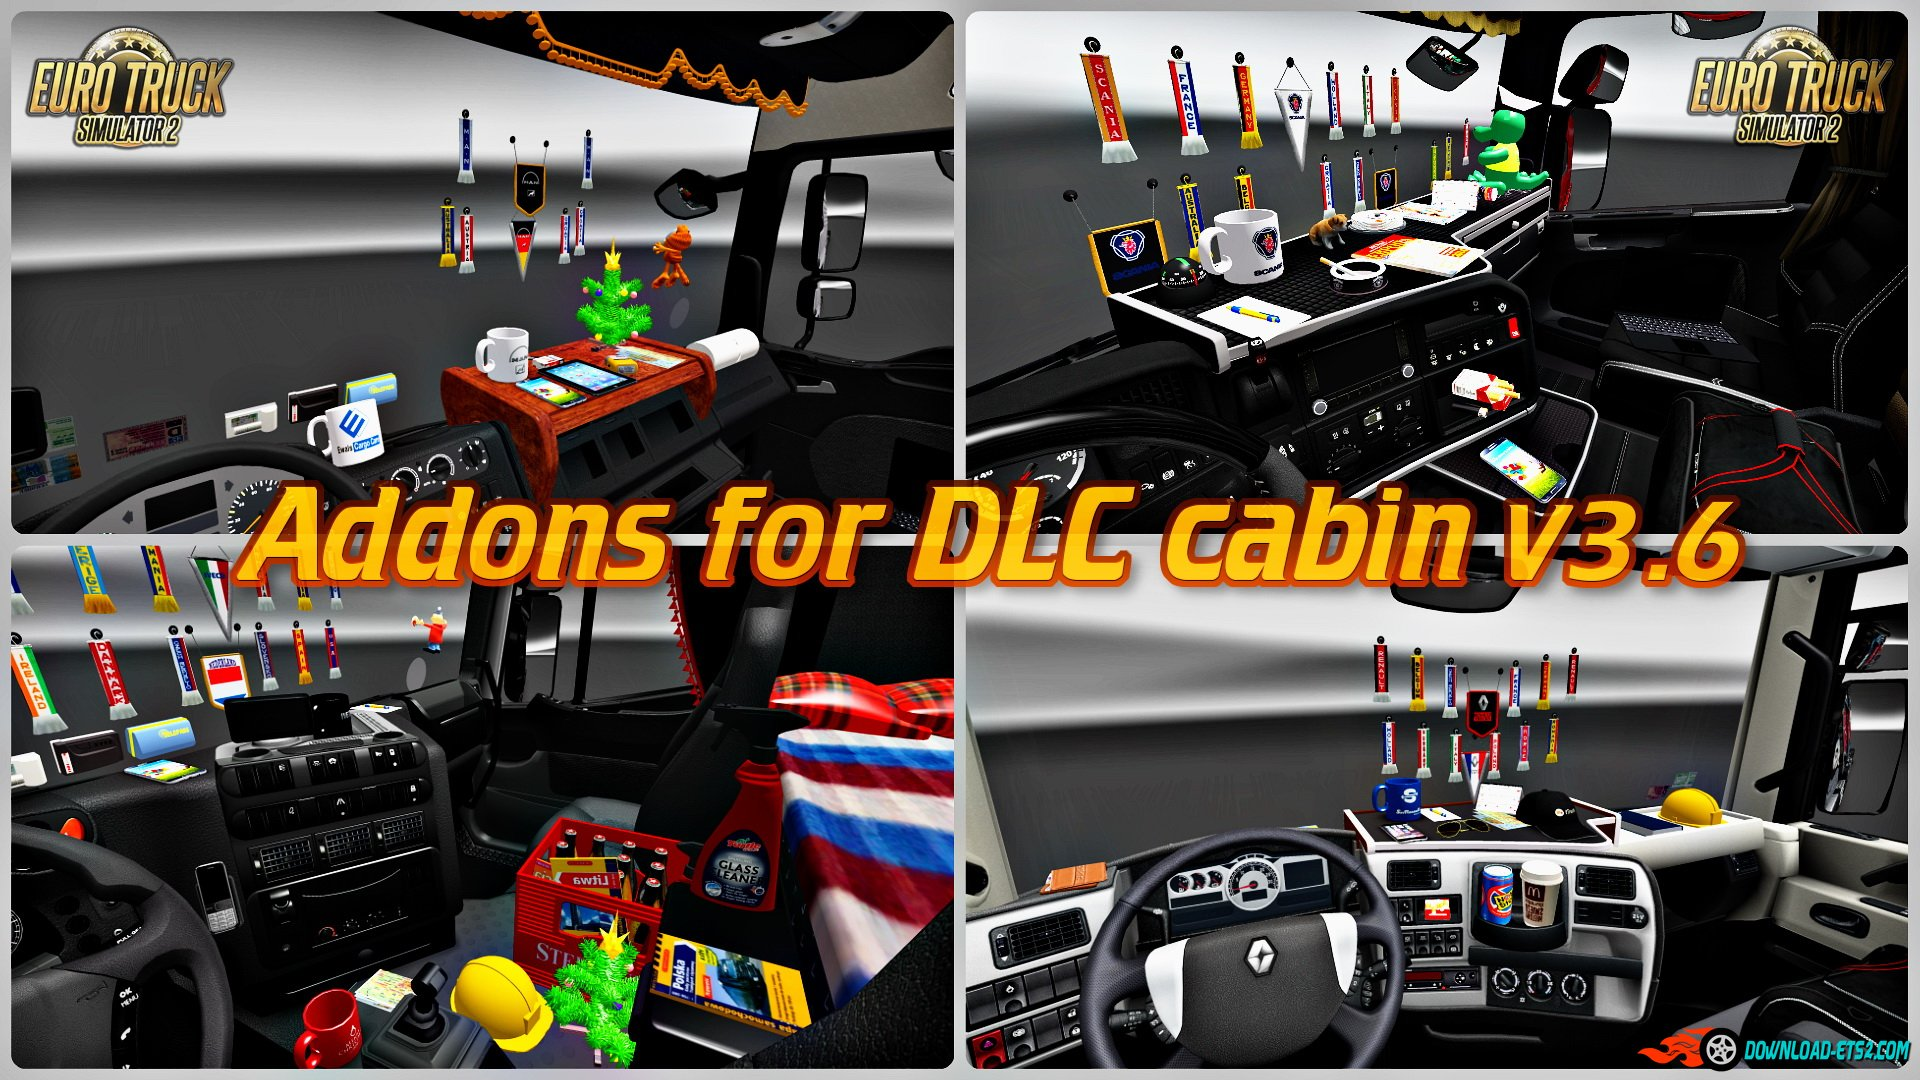 Addons for DLC cabin v3.6